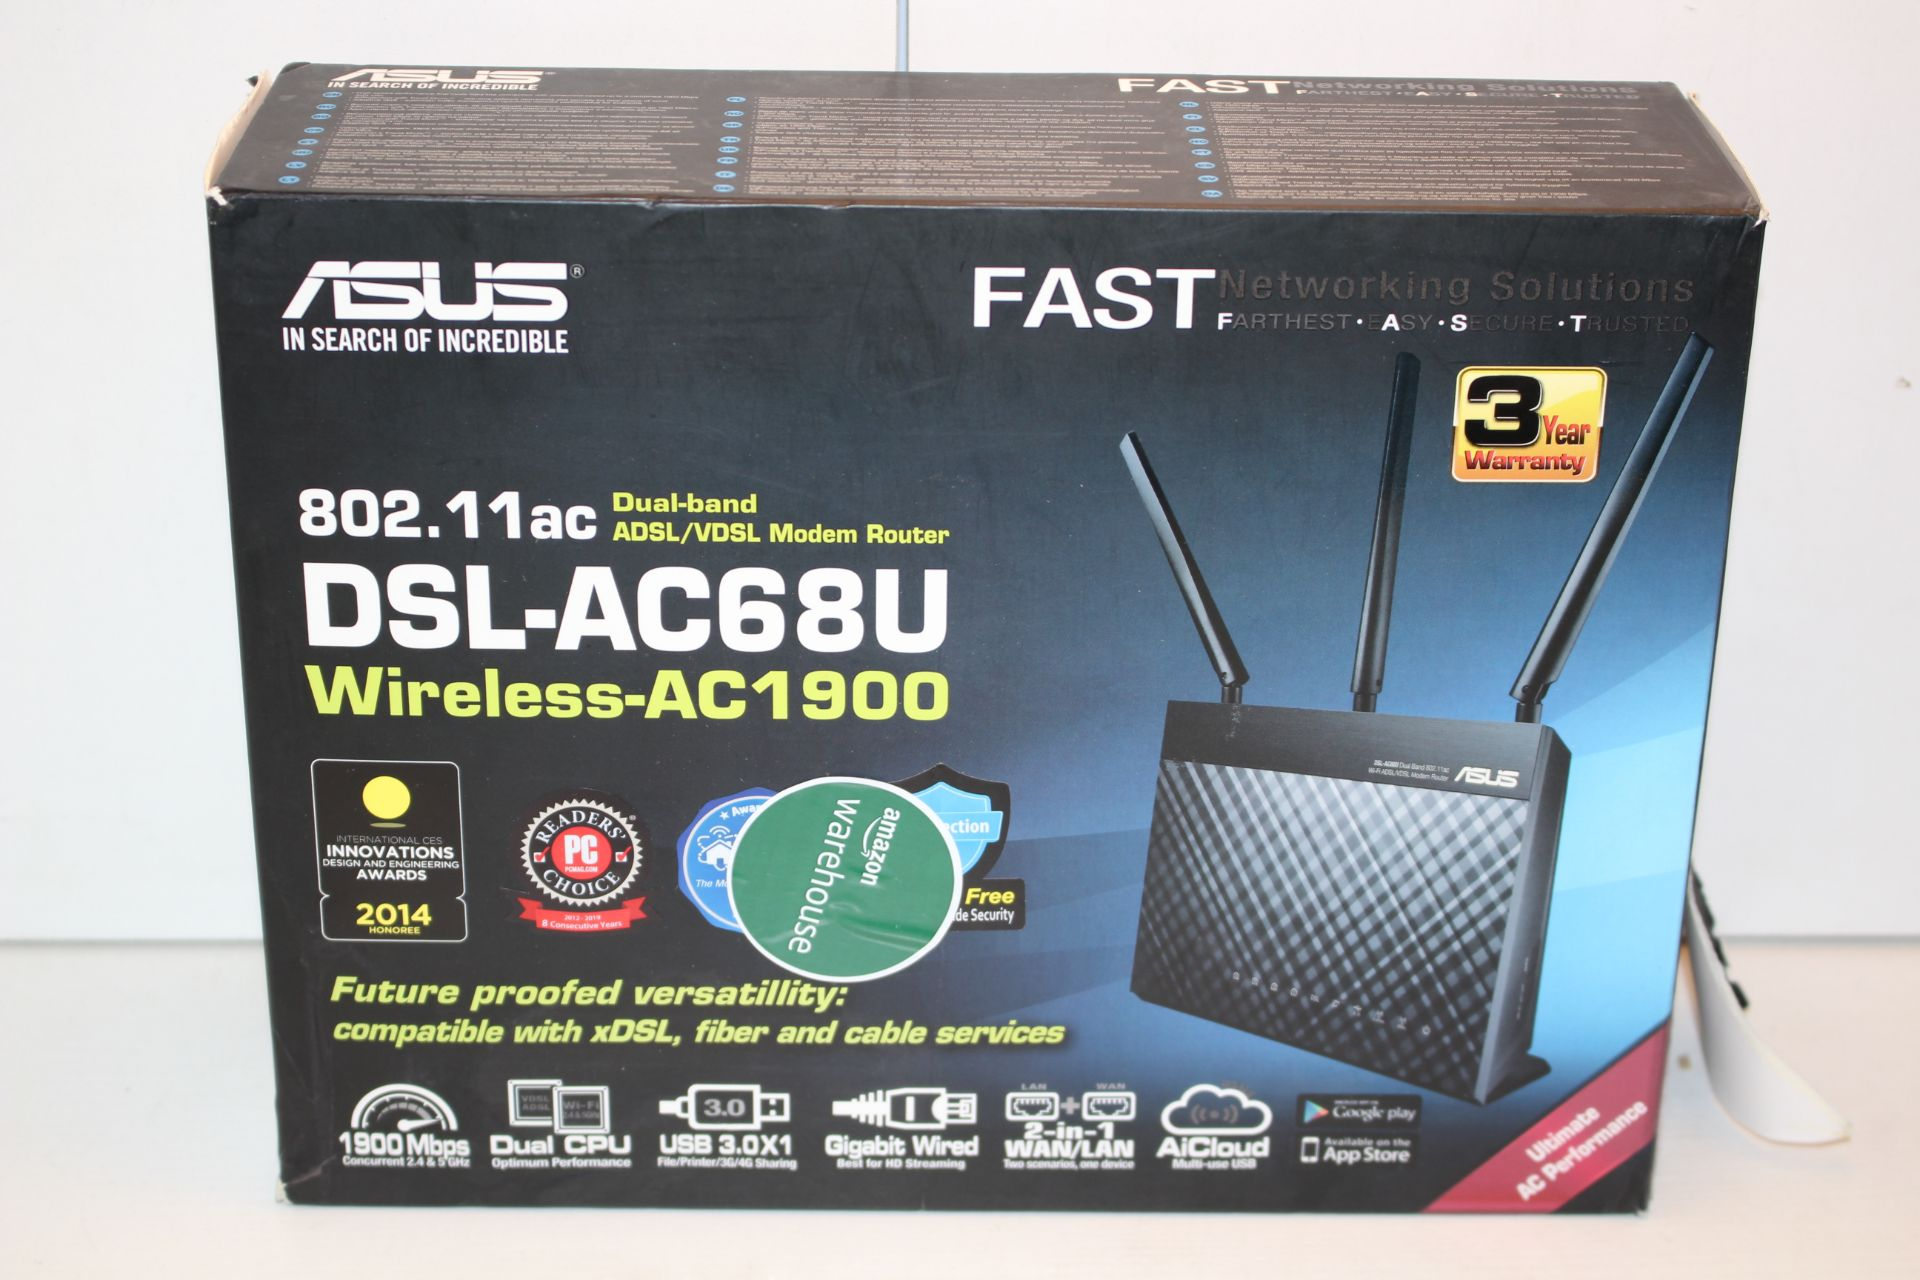 BOXED ASUS FAST NETWORKING SOLUTION DUAL BAND WIRELESS ROUTER DSL-AC68U RRP £160.00Condition